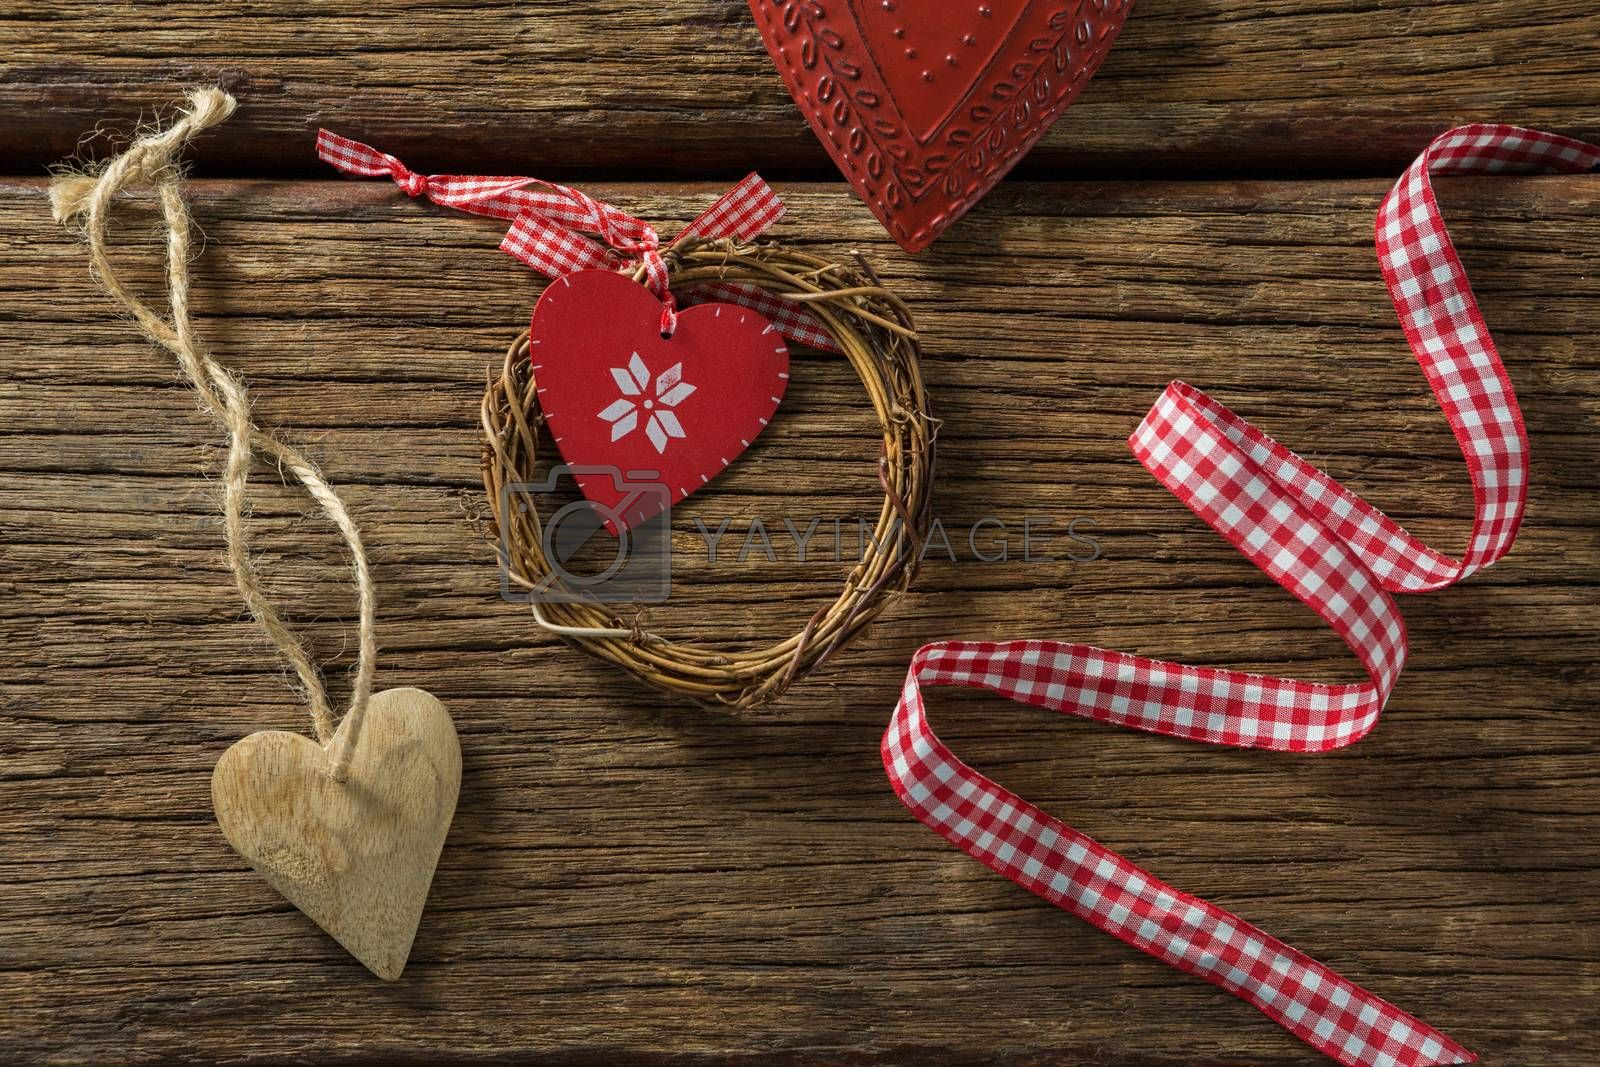 Overhead view of heart shape decoration with ribbon and wreath by Wavebreakmedia